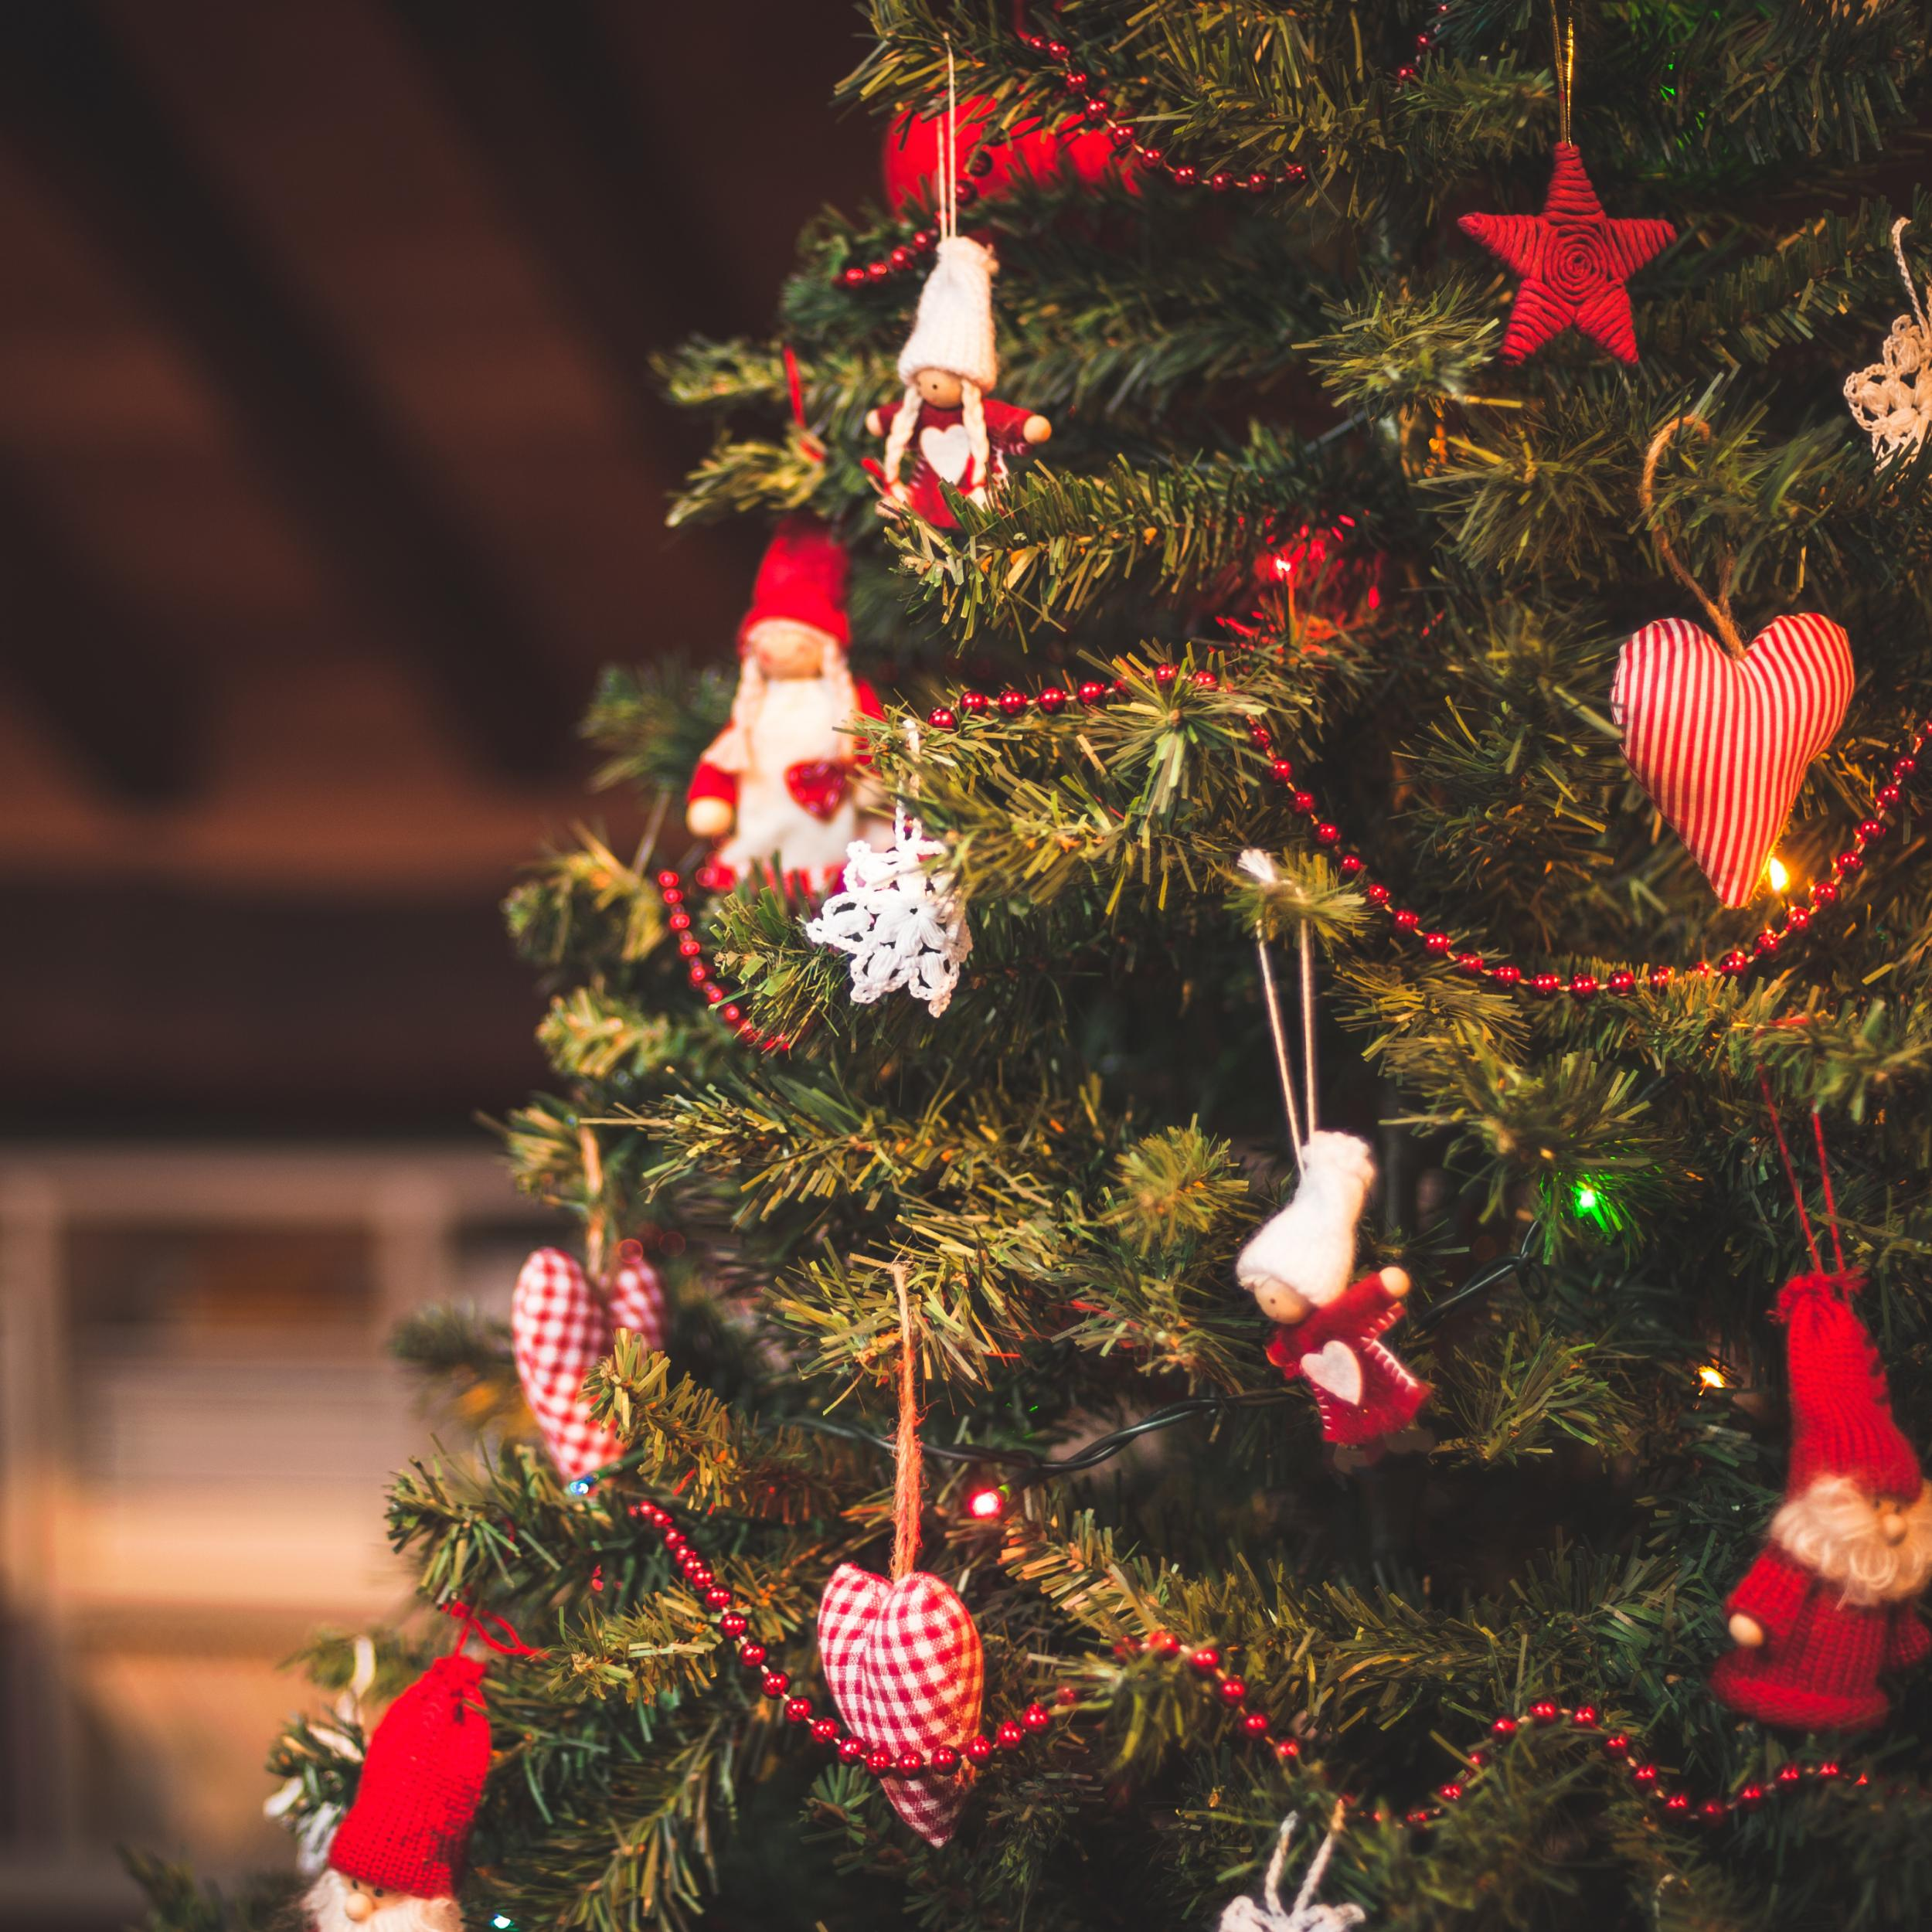 Medical Christmas Tree: Christmas Isn't Only For Christians: Secular Celebrators